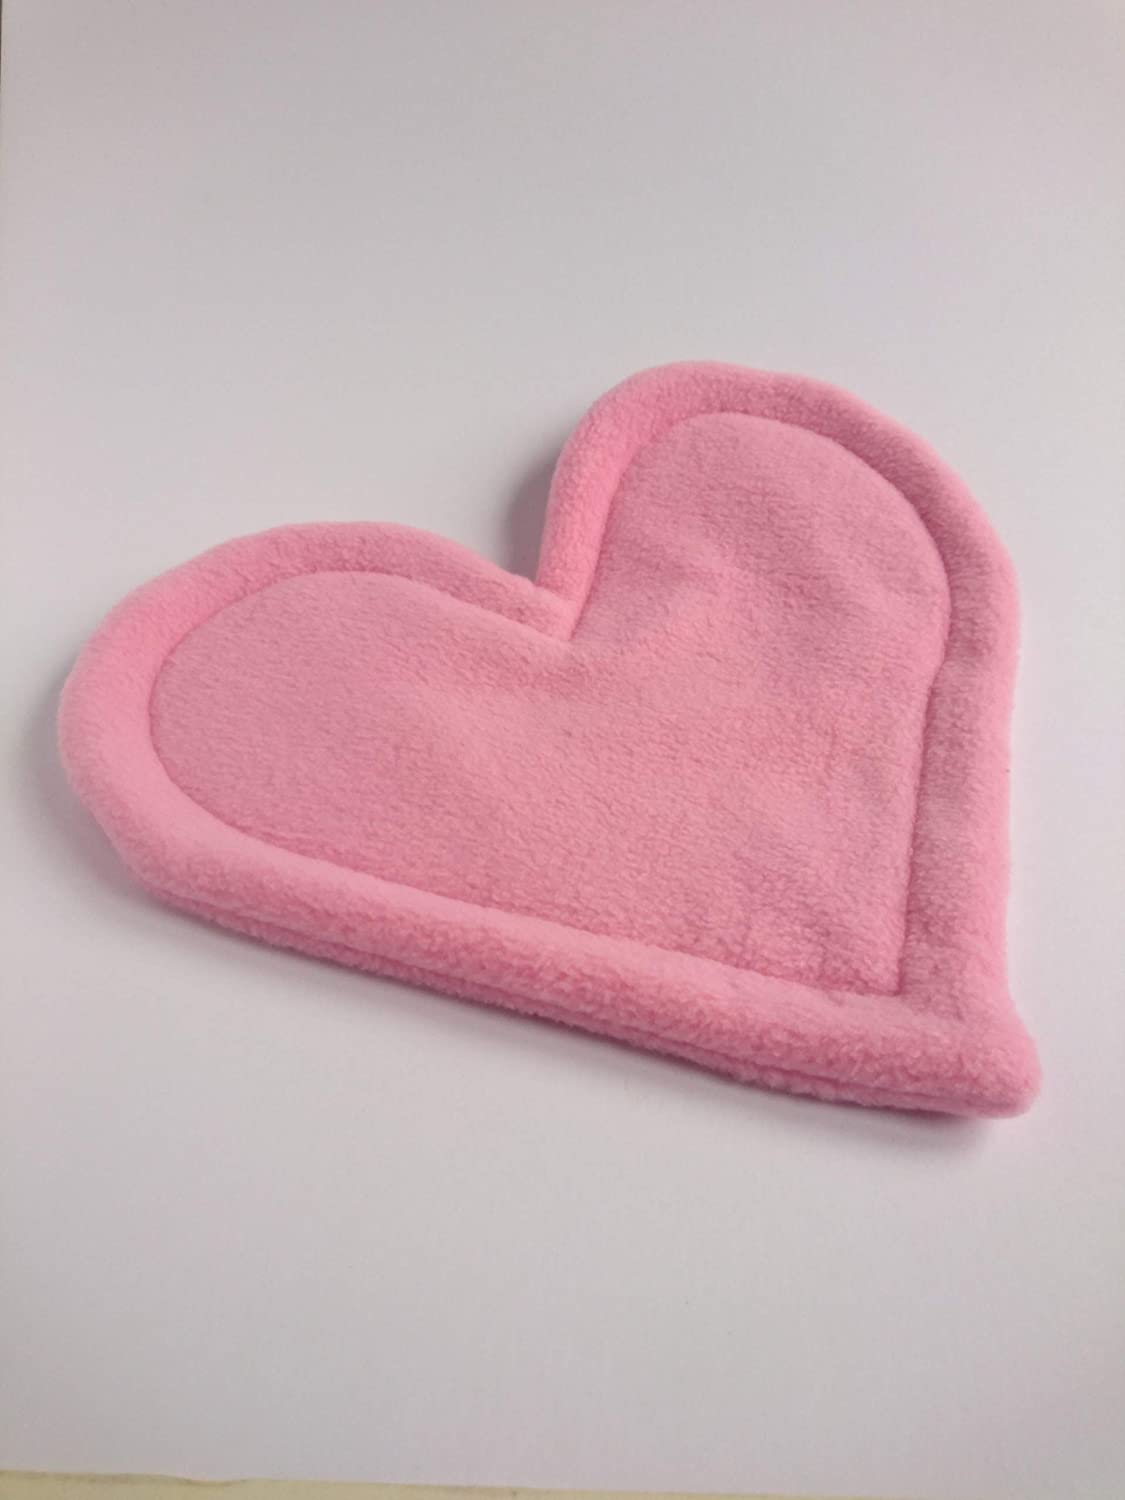 Pink Heart Shaped Fleece Pee Potty Pad with Absorbent Core for Guinea Pigs and other Small Pets